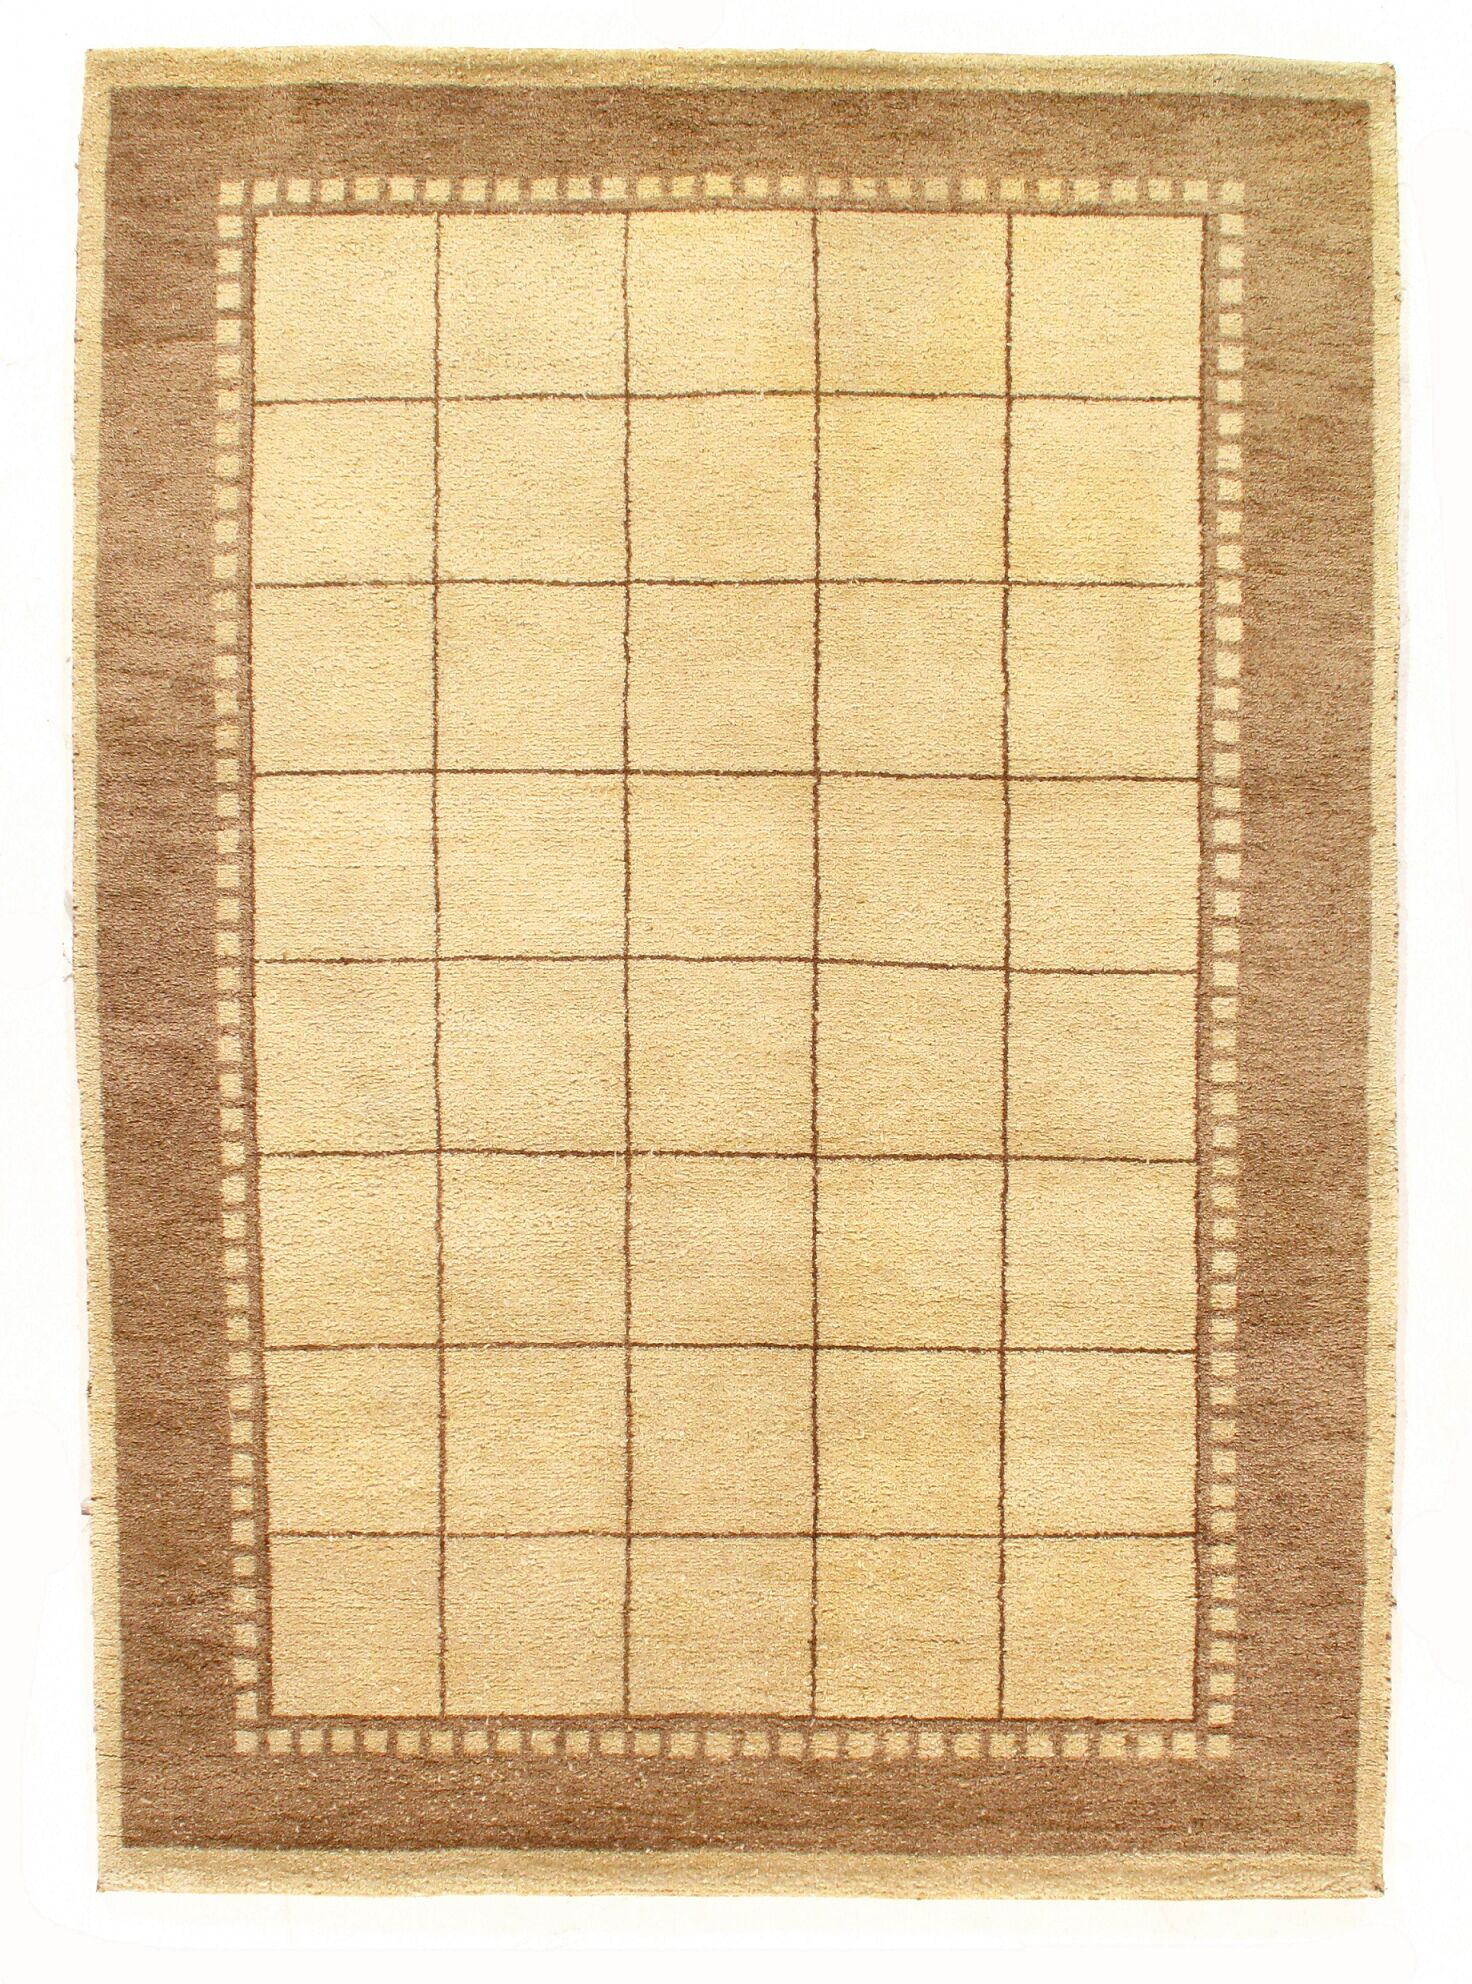 Gabbeh Hand-Knotted Wool Gold Area Rug